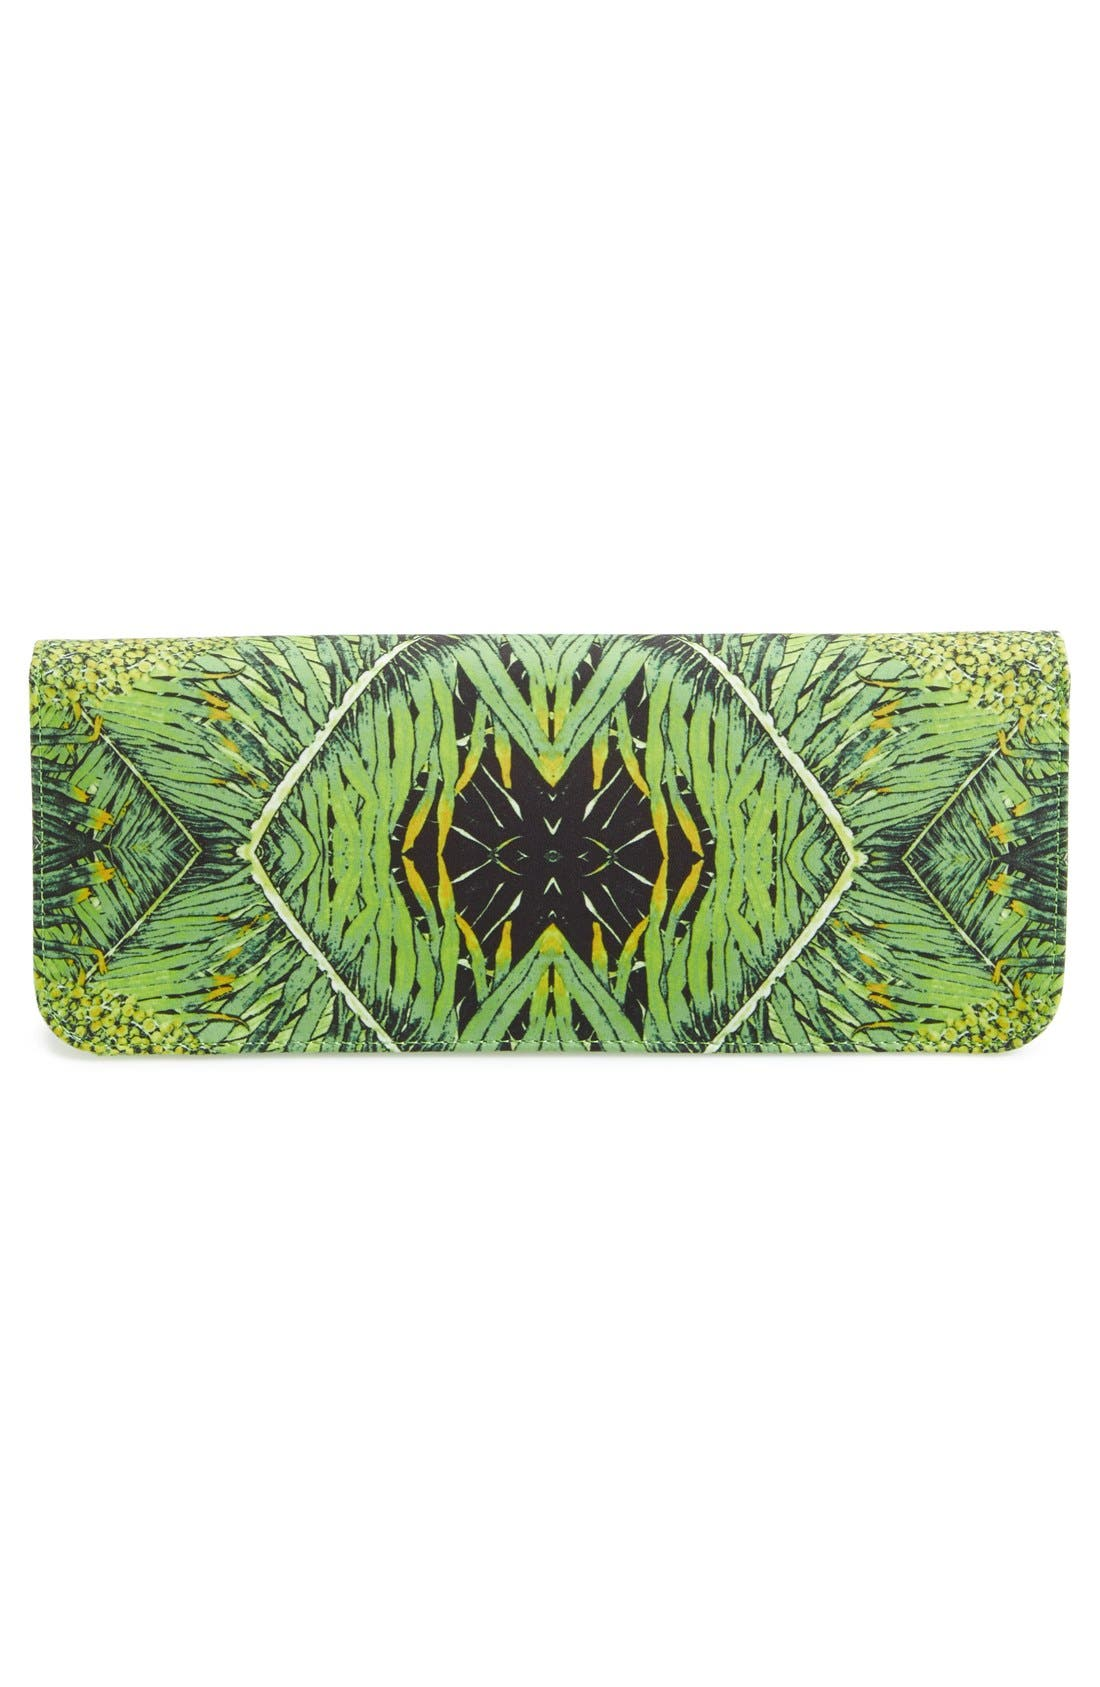 TED BAKER LONDON, 'Tropical Dove' Clutch, Alternate thumbnail 4, color, 300